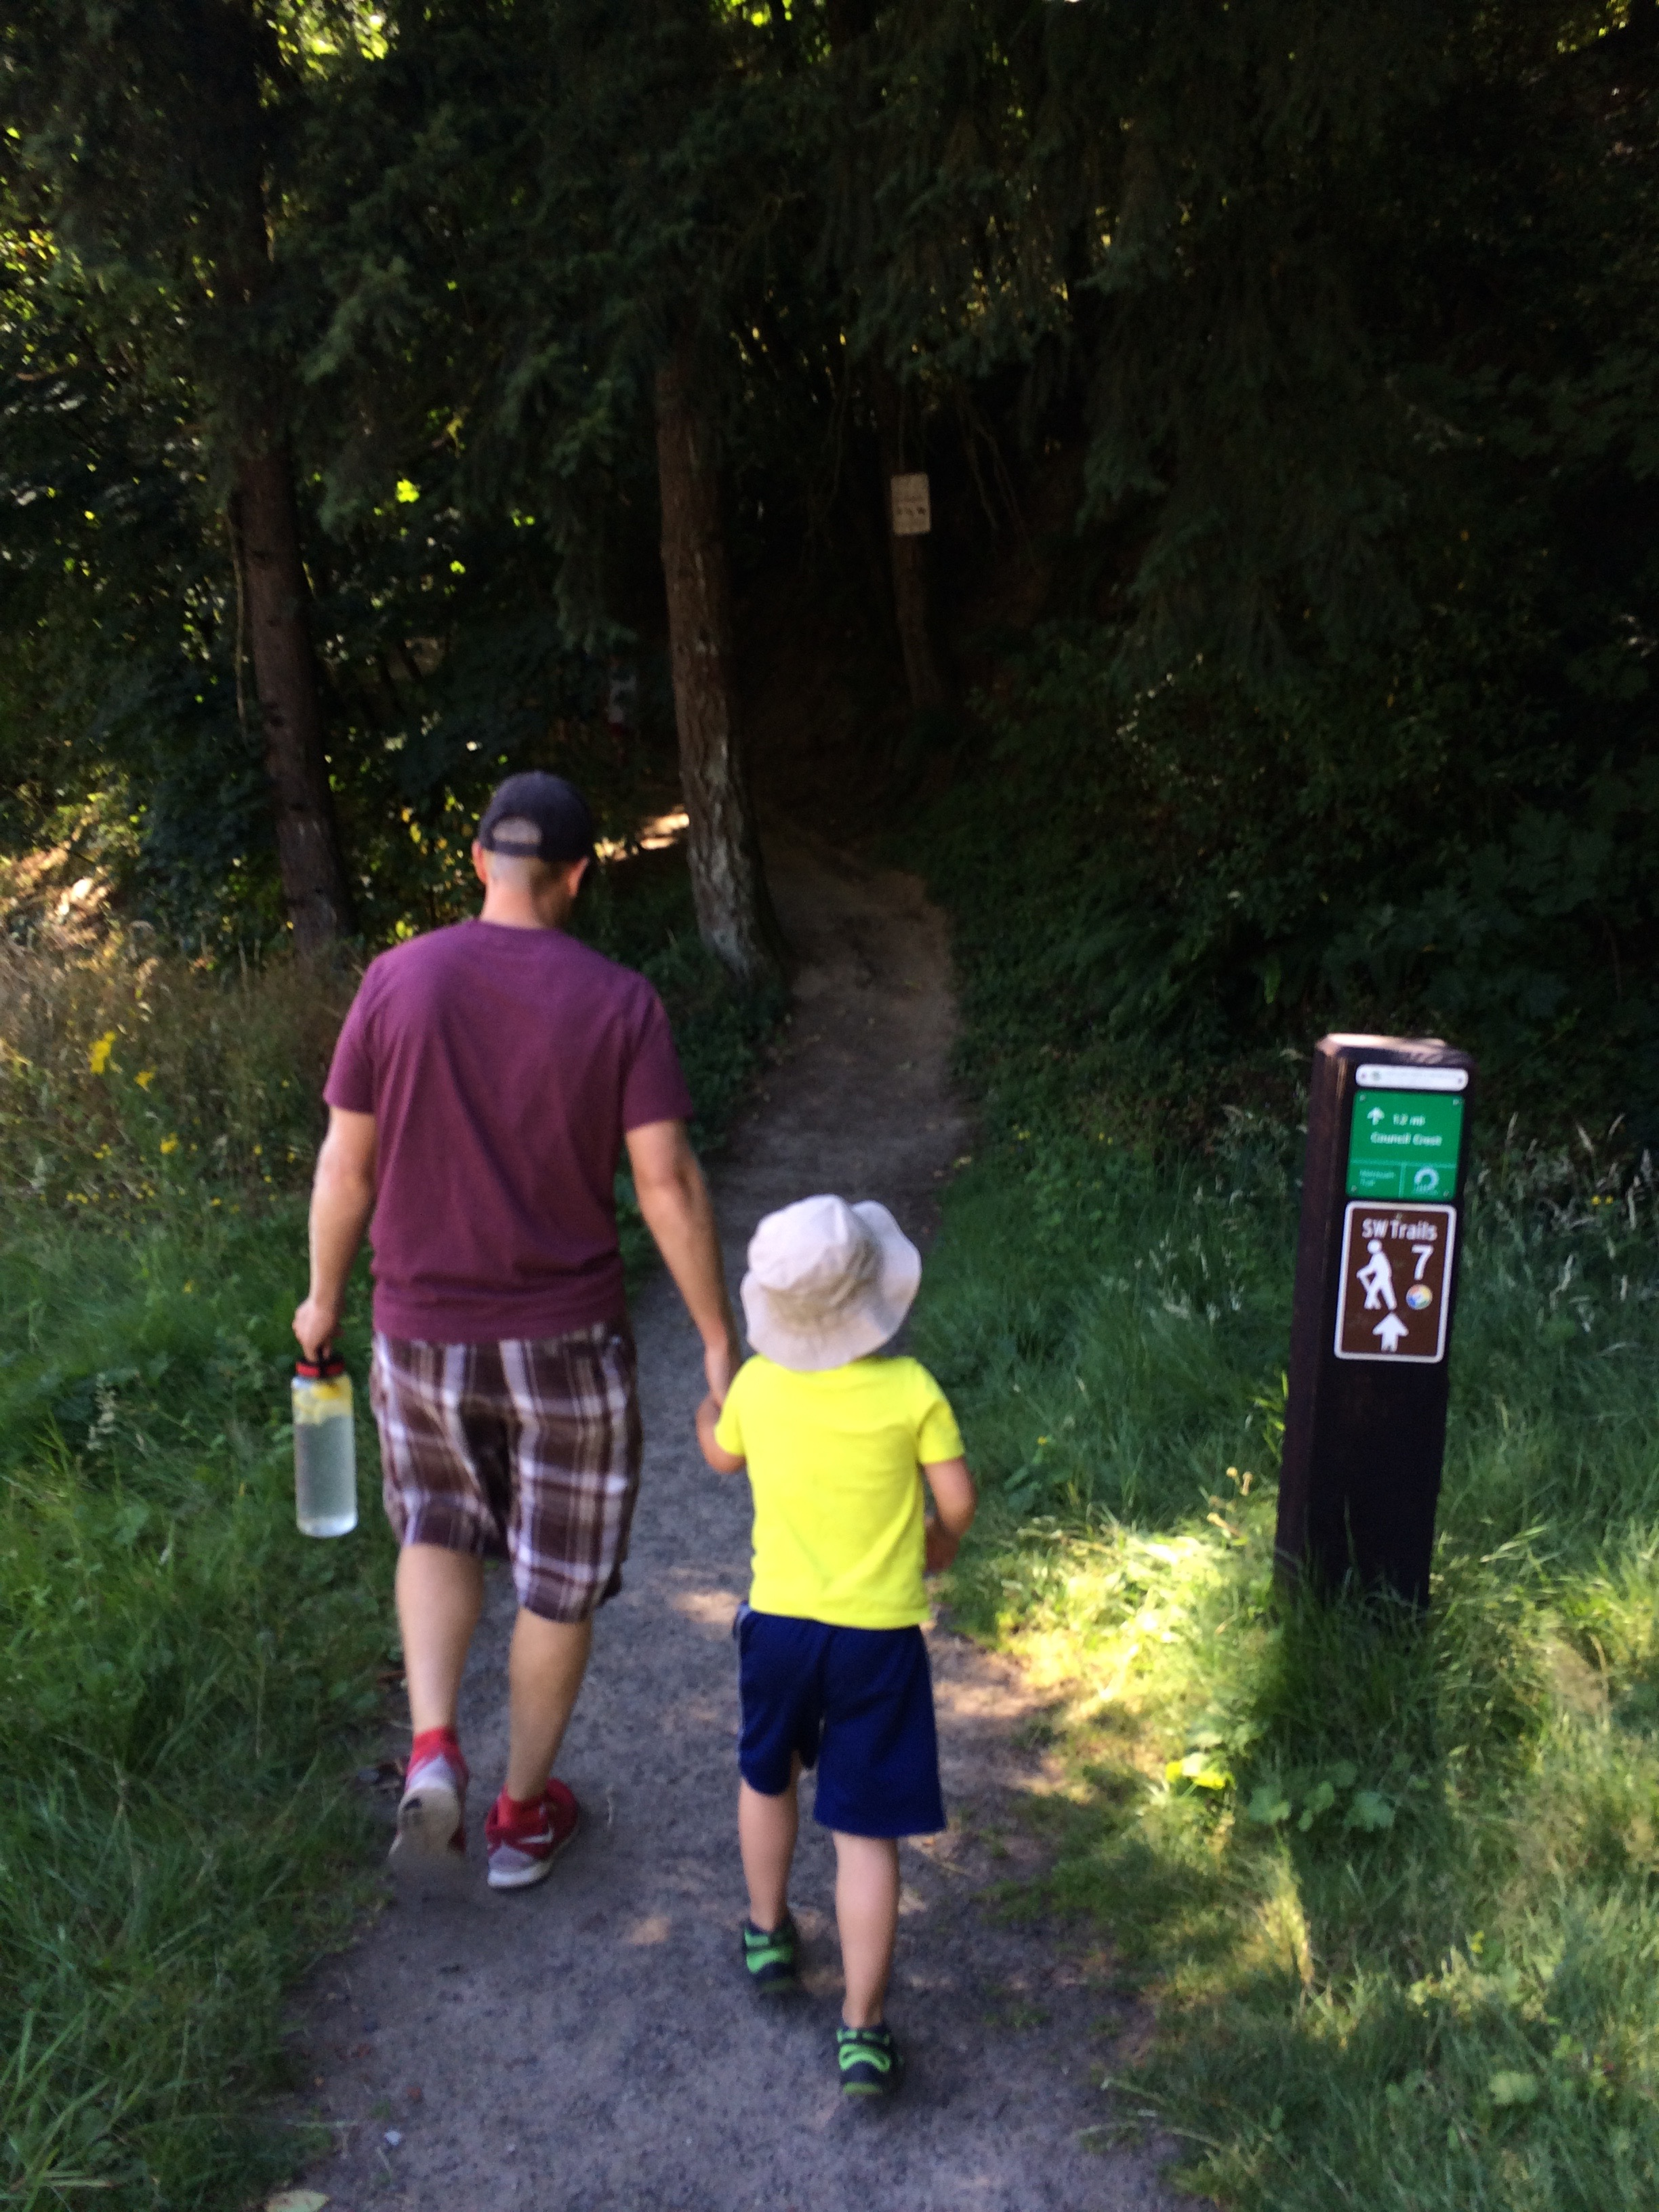 Portion of the 4T trail: Portland, OR